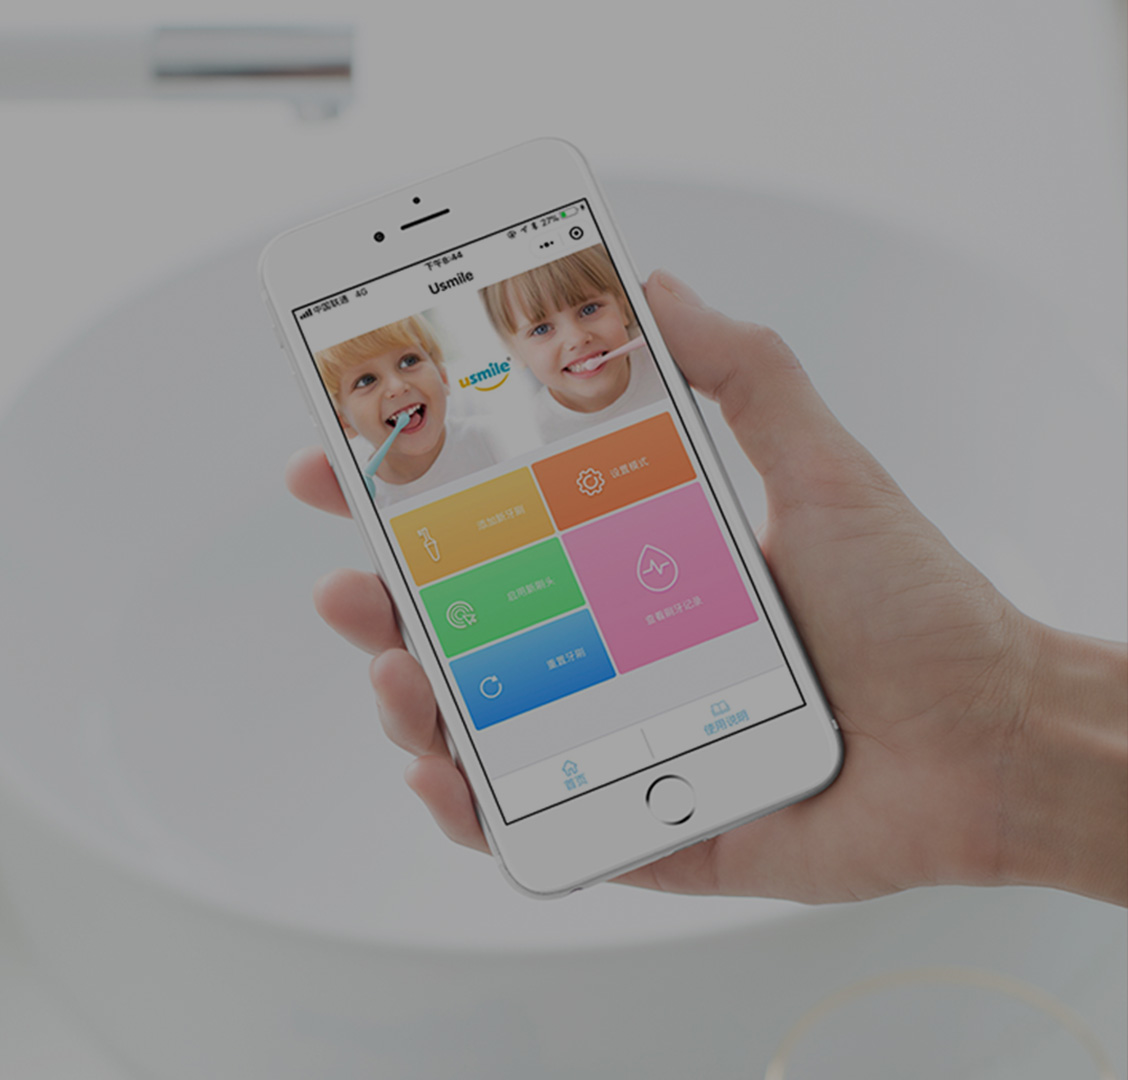 usmile Toothbrush - Conveying care with technoloy